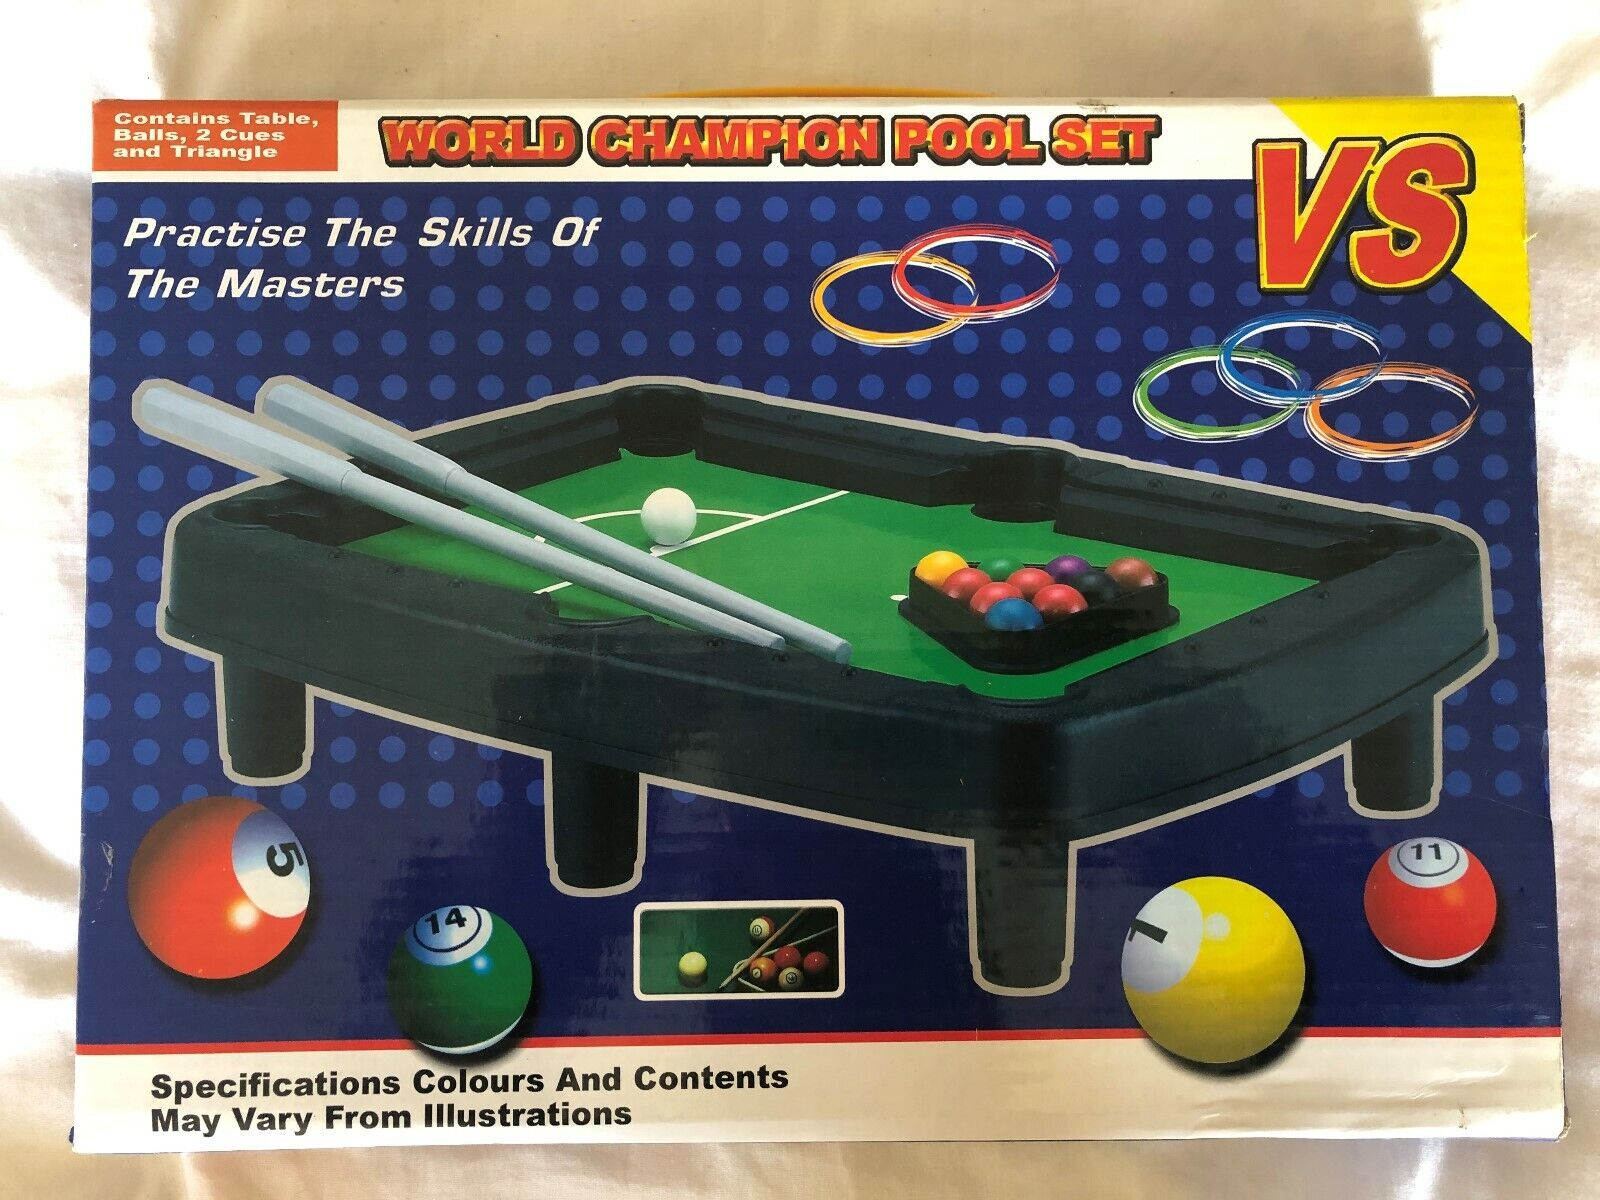 Mini snooker table game/gadget